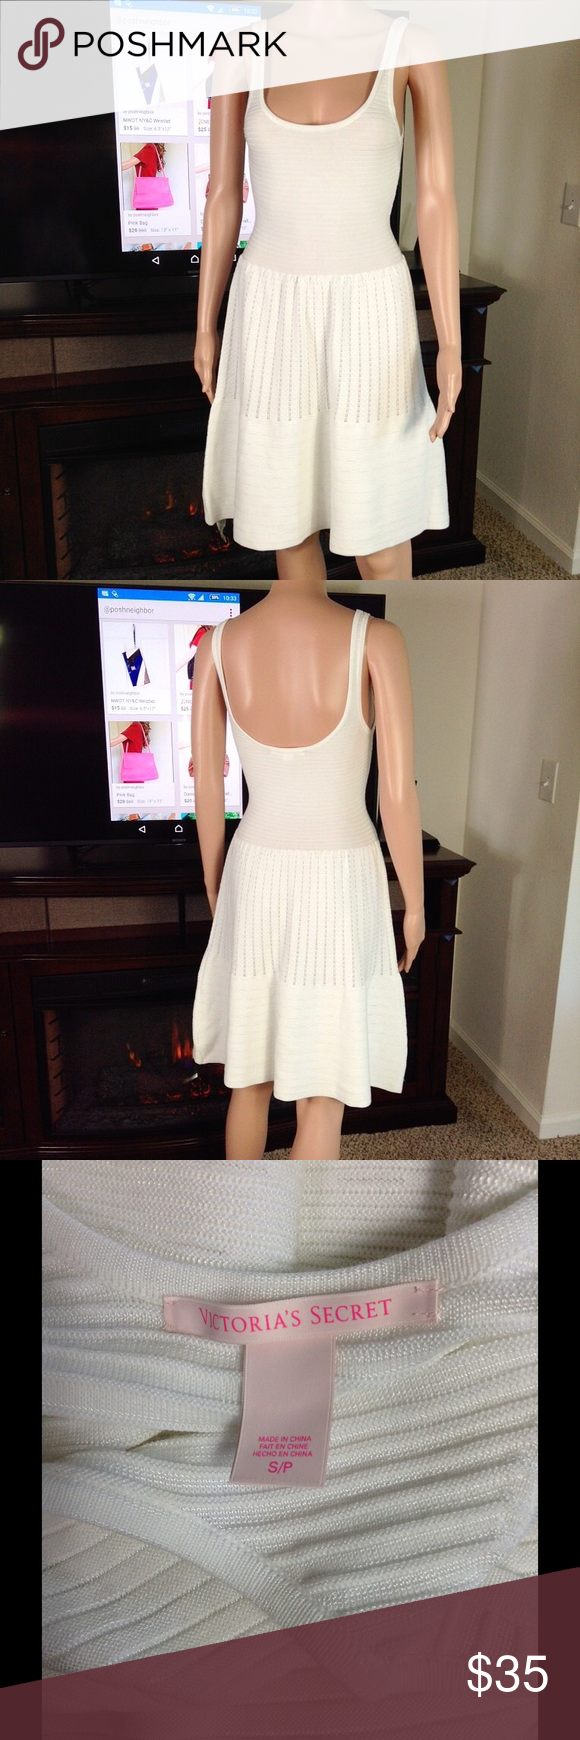 """Victoria's Secret Knit Dress ✔️Length from shoulders 36"""". Like new. No rips, holes or stains. See materials on last photo. ✔️ Reasonable offers or bundle 3 listings and get automatic 20% discount. ✔️Same day shipping  ✔️Freebie ❌No trades or outside PM transactions ✔️ Questions Happy shopping Victoria's Secret Dresses"""